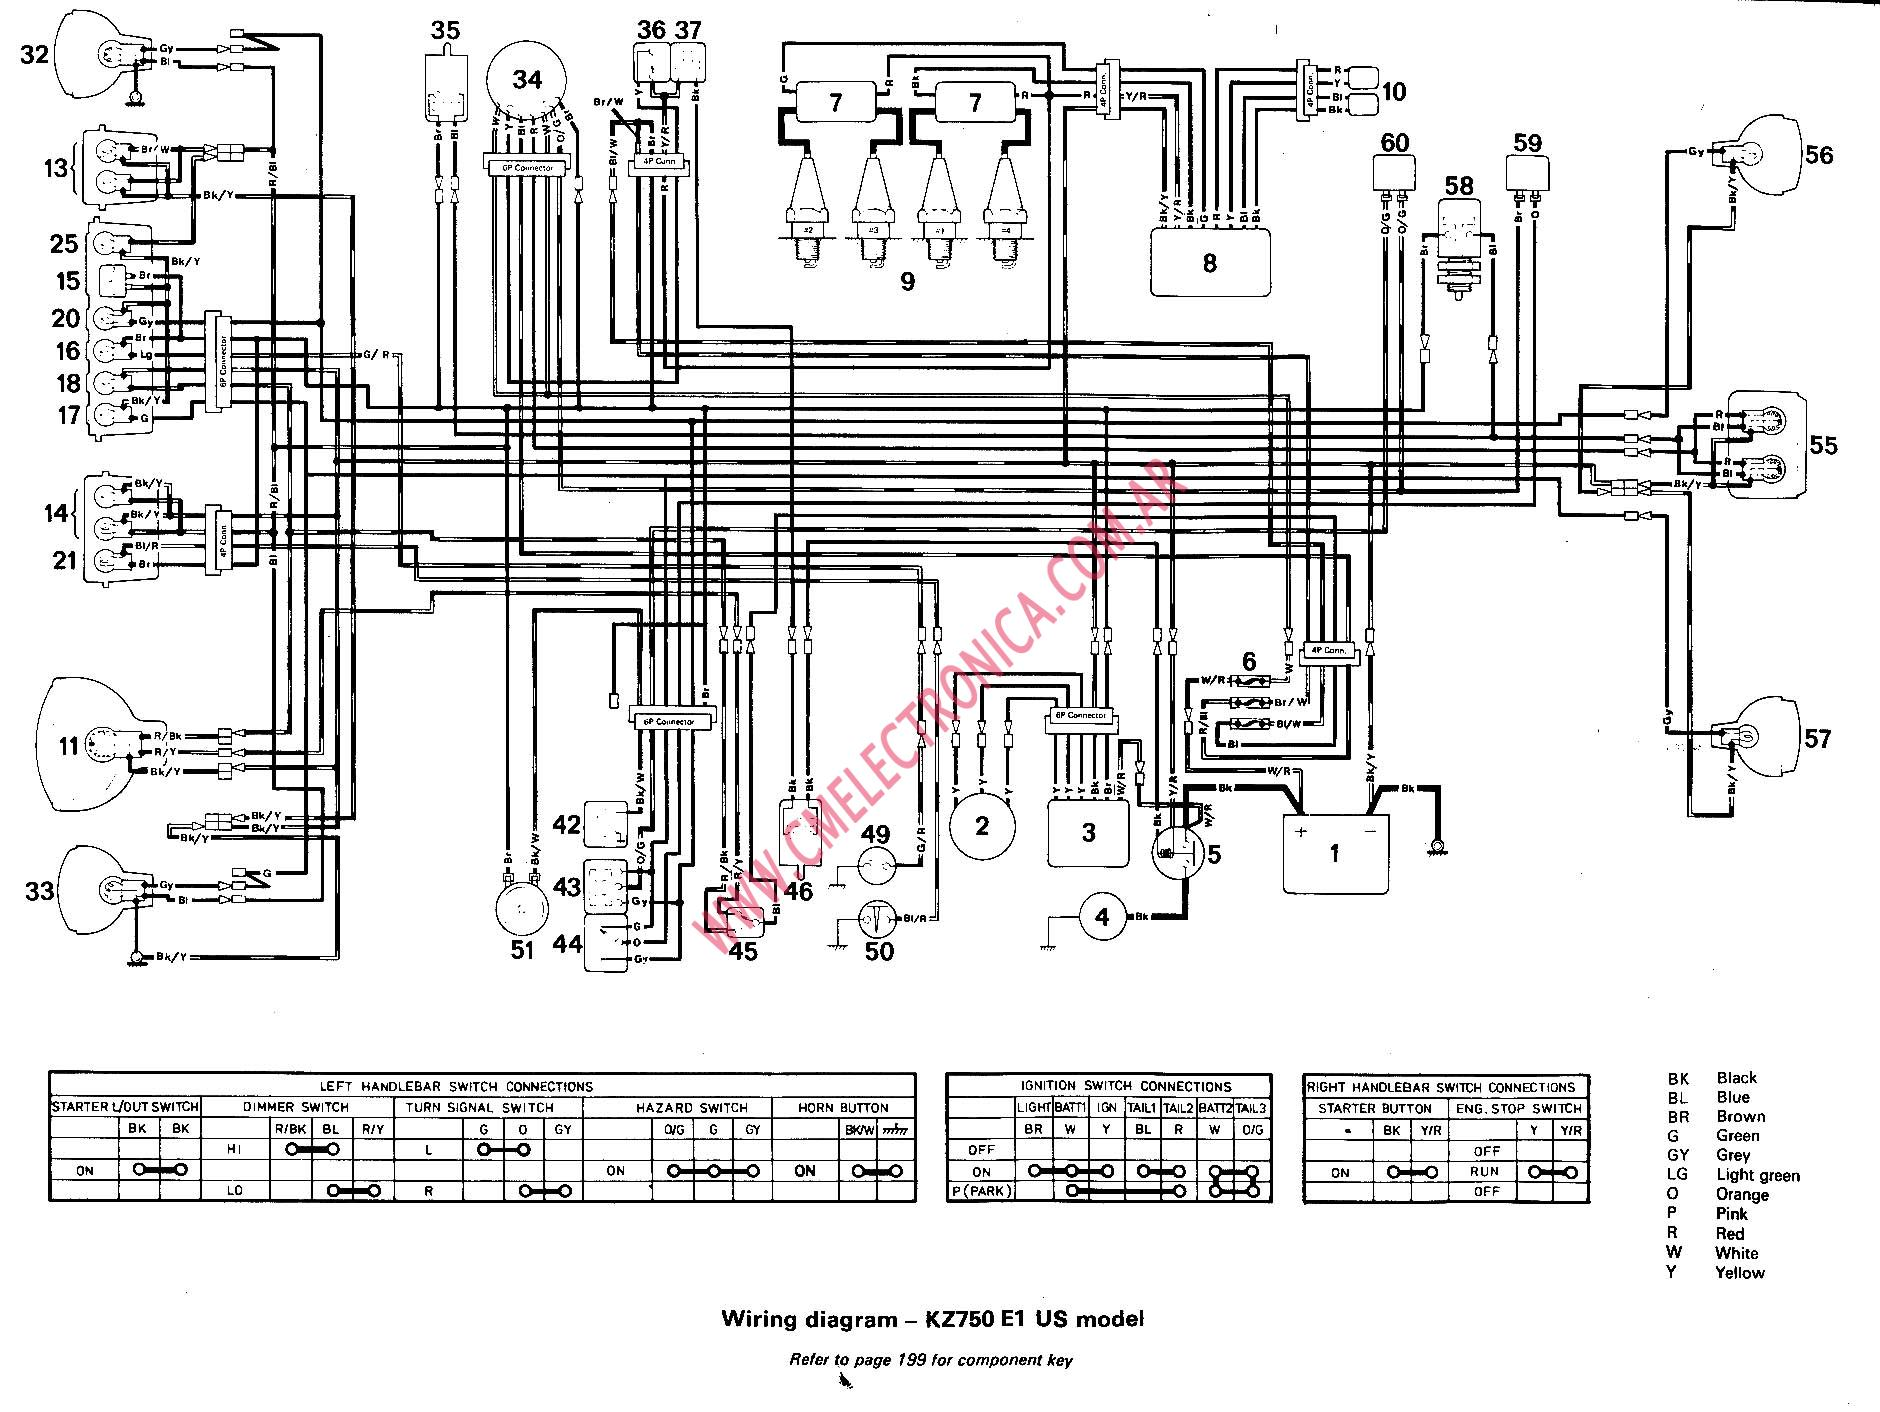 2002 Arctic Cat 500 Wiring Diagram